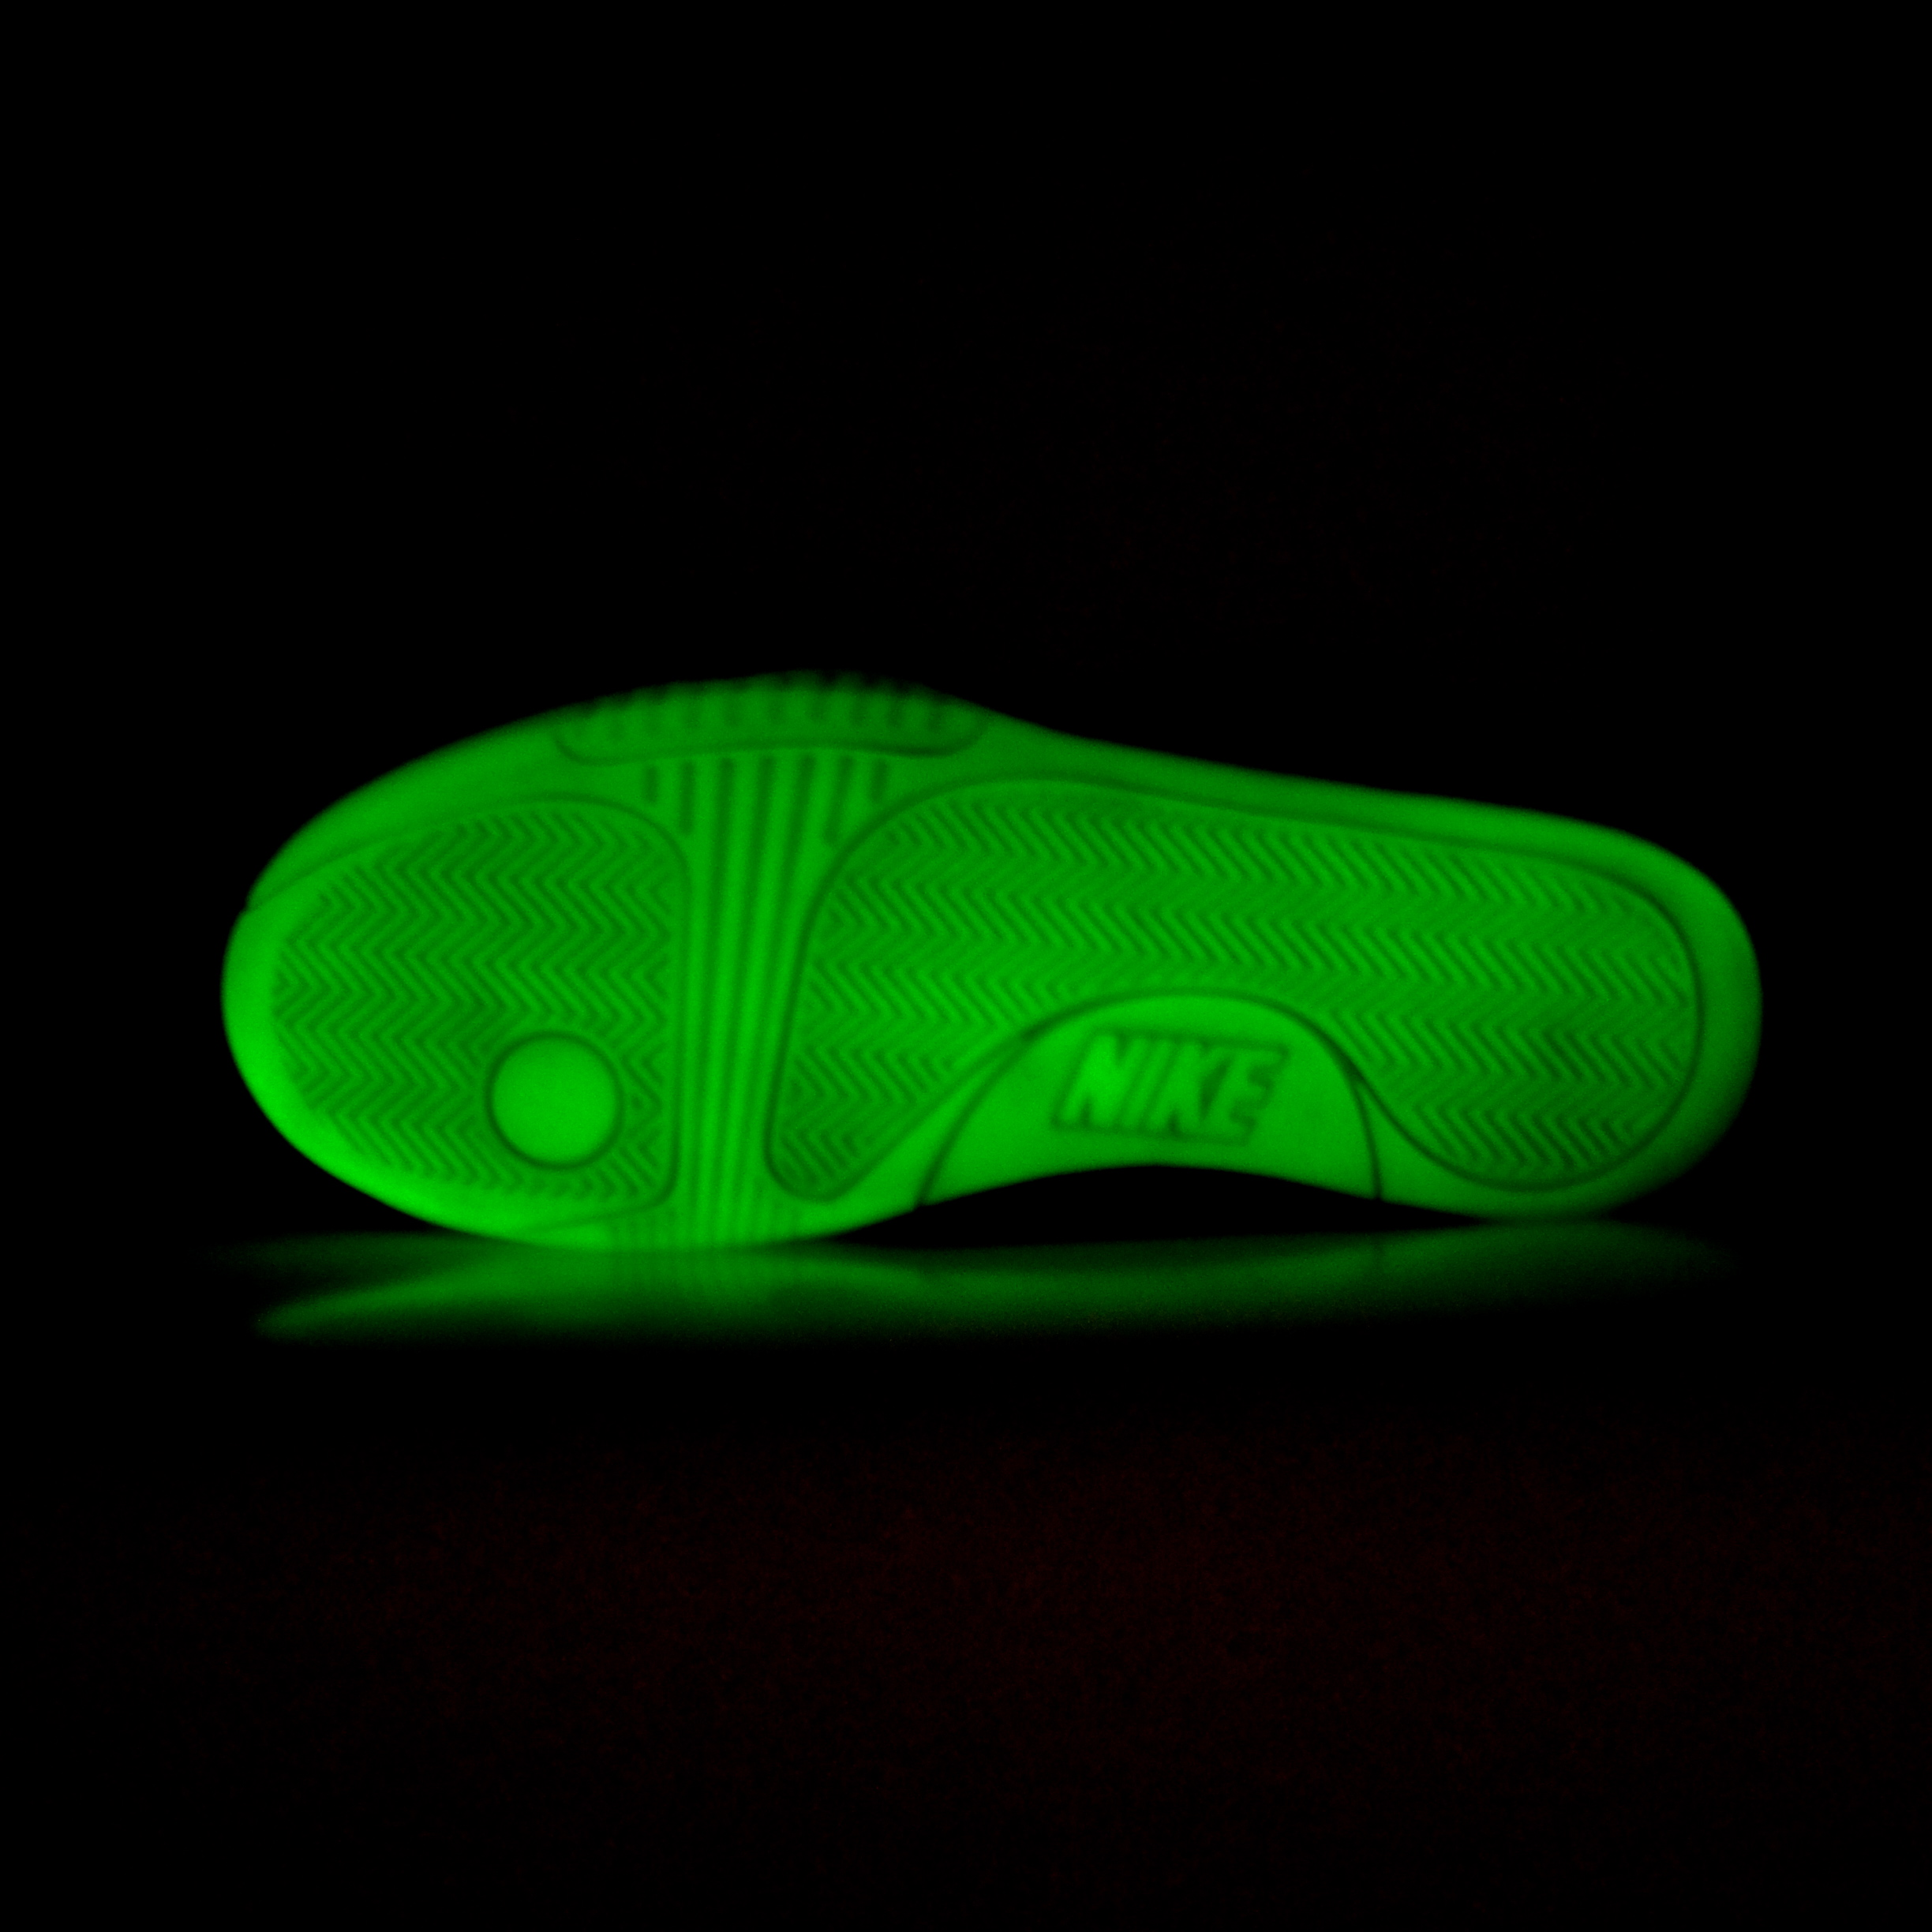 Nike Air Yeezy 2 NRG  Solar Red    Thumbnail 3